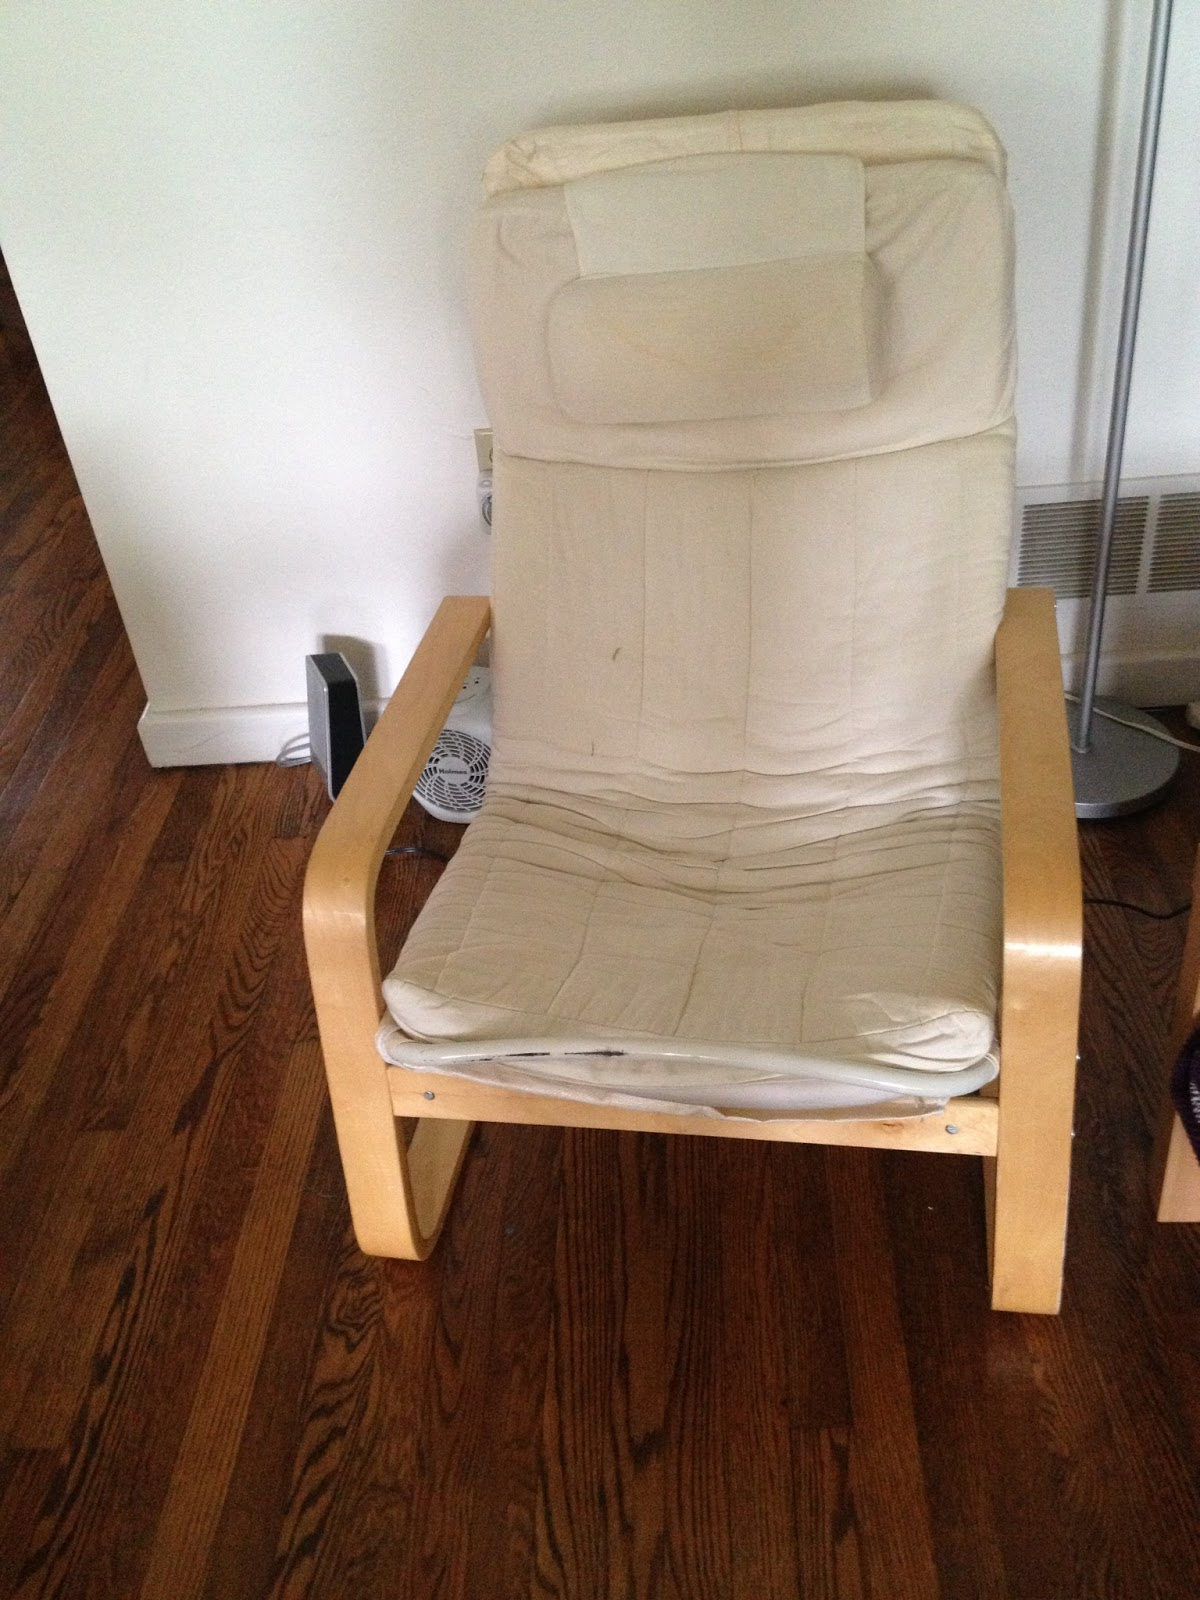 Reupholster Ikea Poang Chair ~ Diy chair slipcovers diy ikea hack poang chair